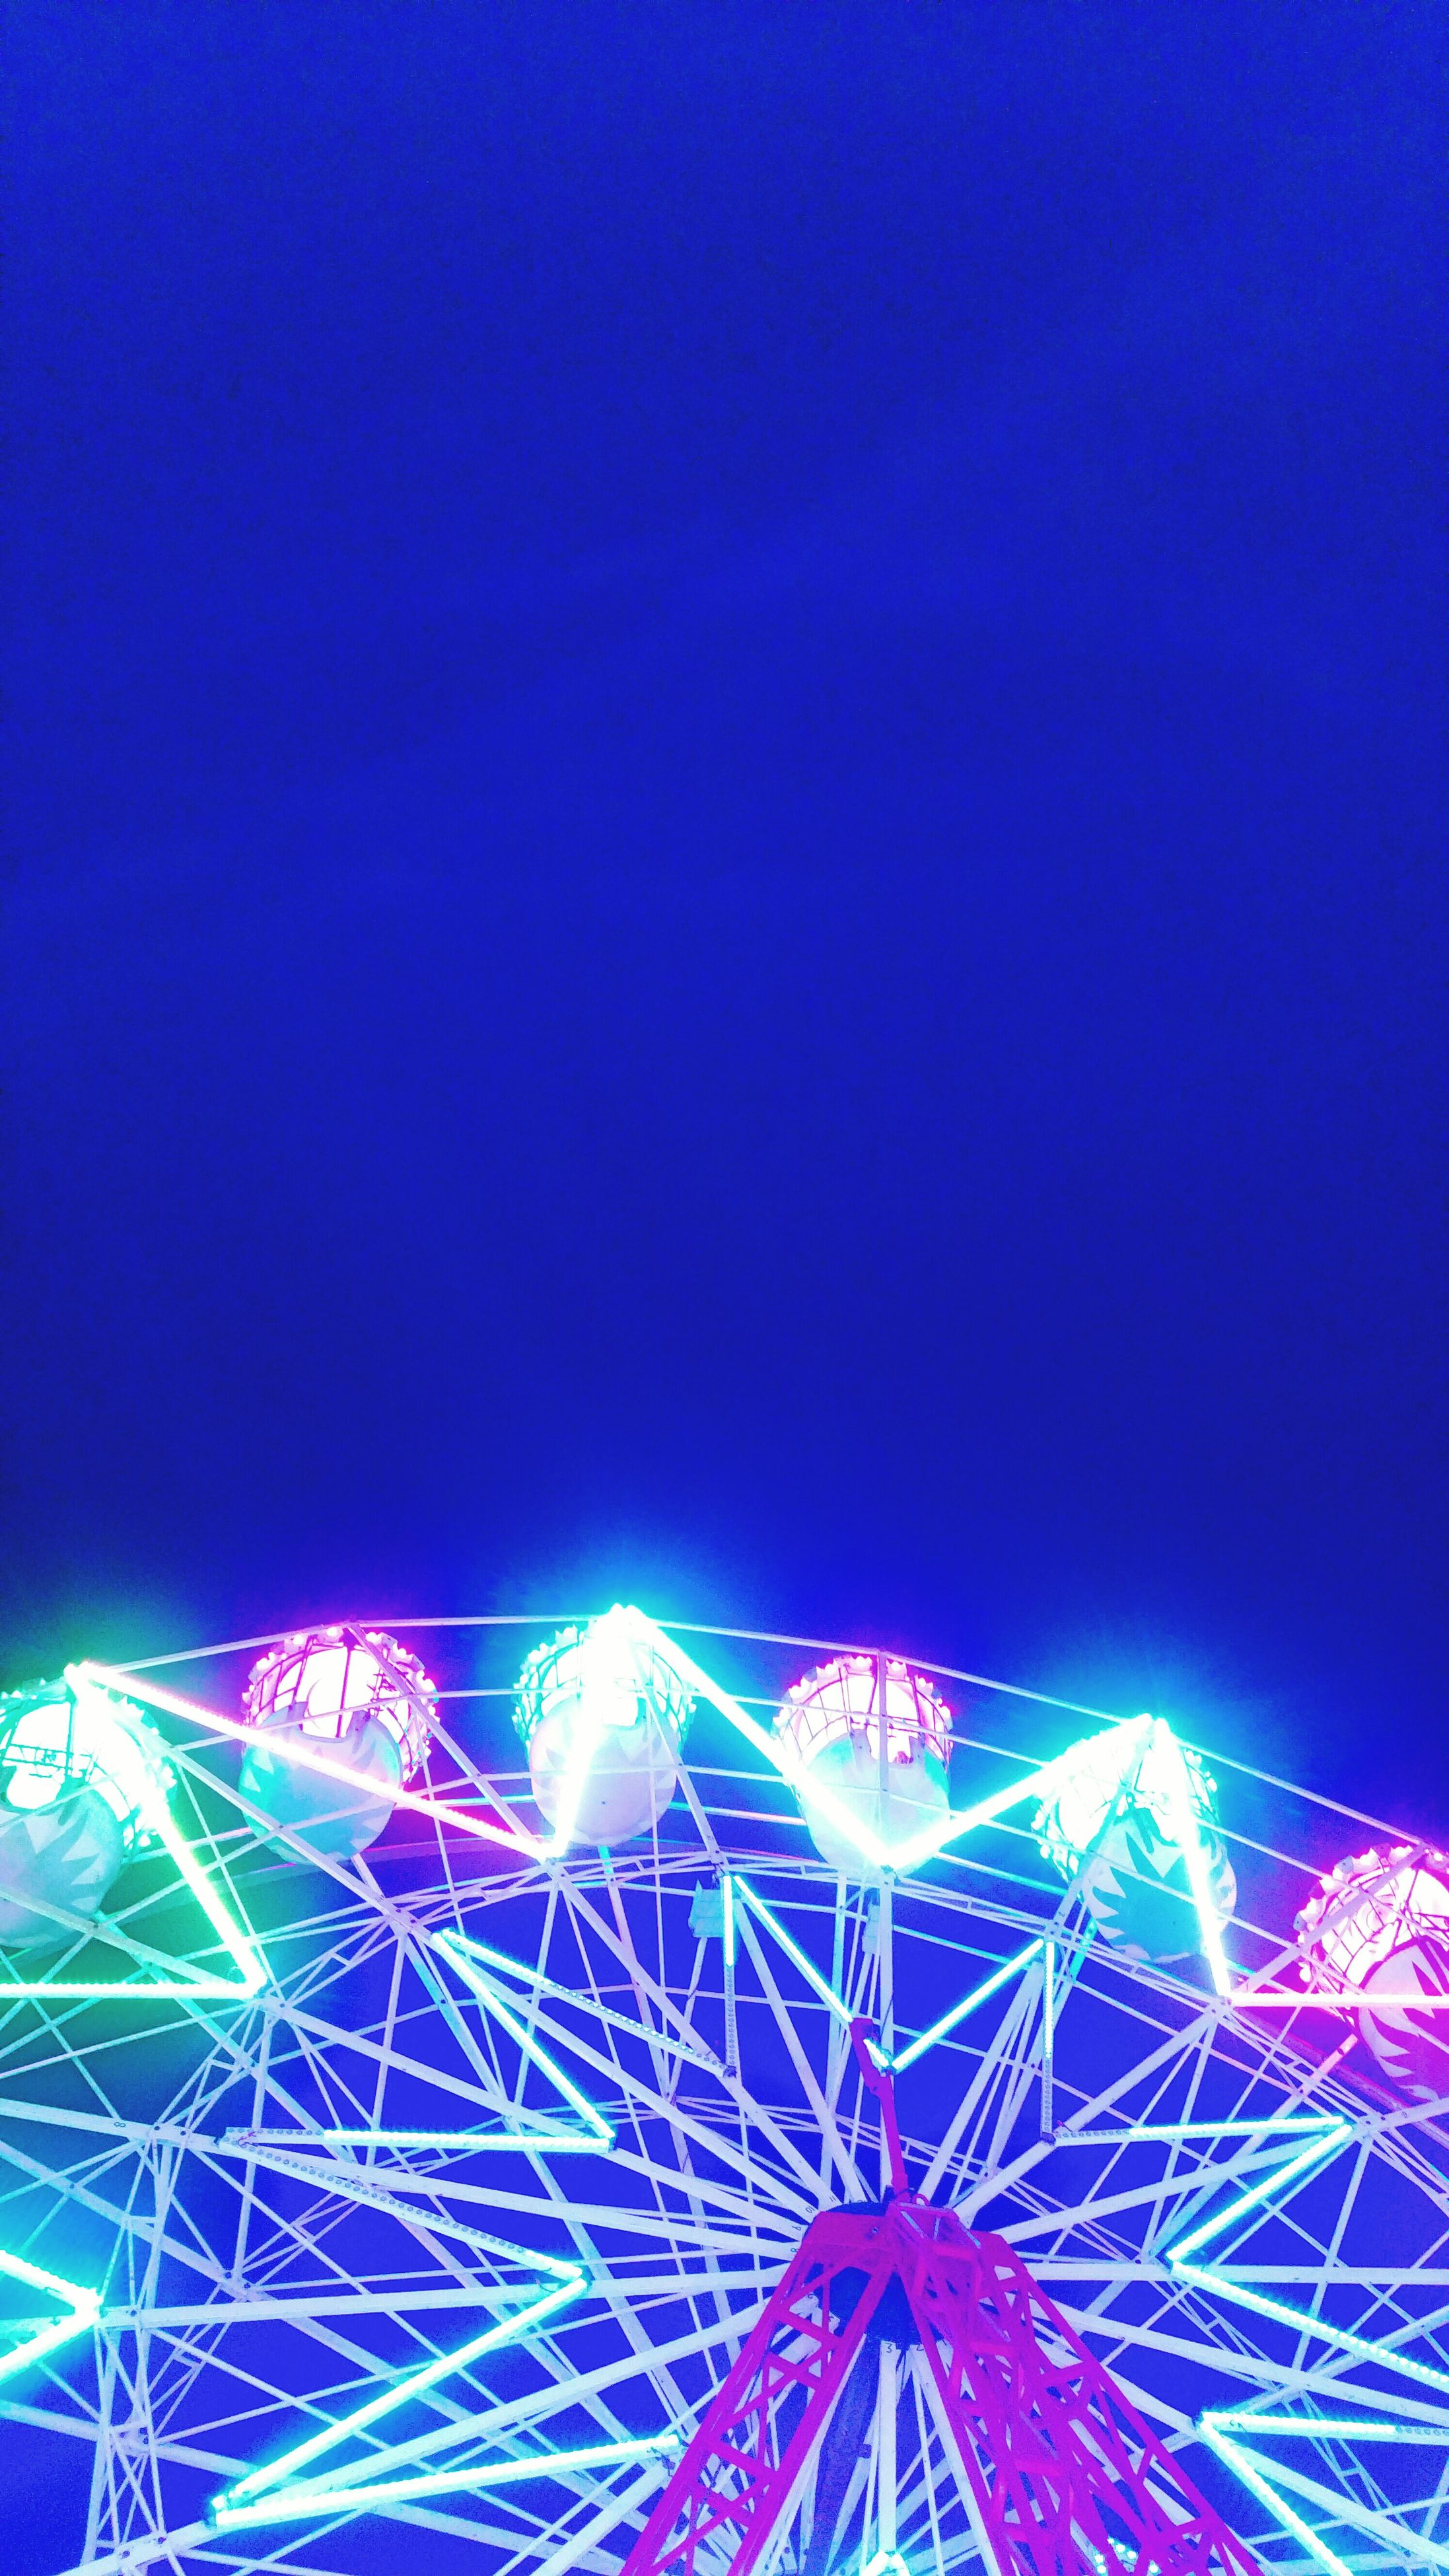 illuminated, night, blue, multi colored, low angle view, glowing, outdoors, light trail, sky, no people, travel destinations, abstract, light, tourism